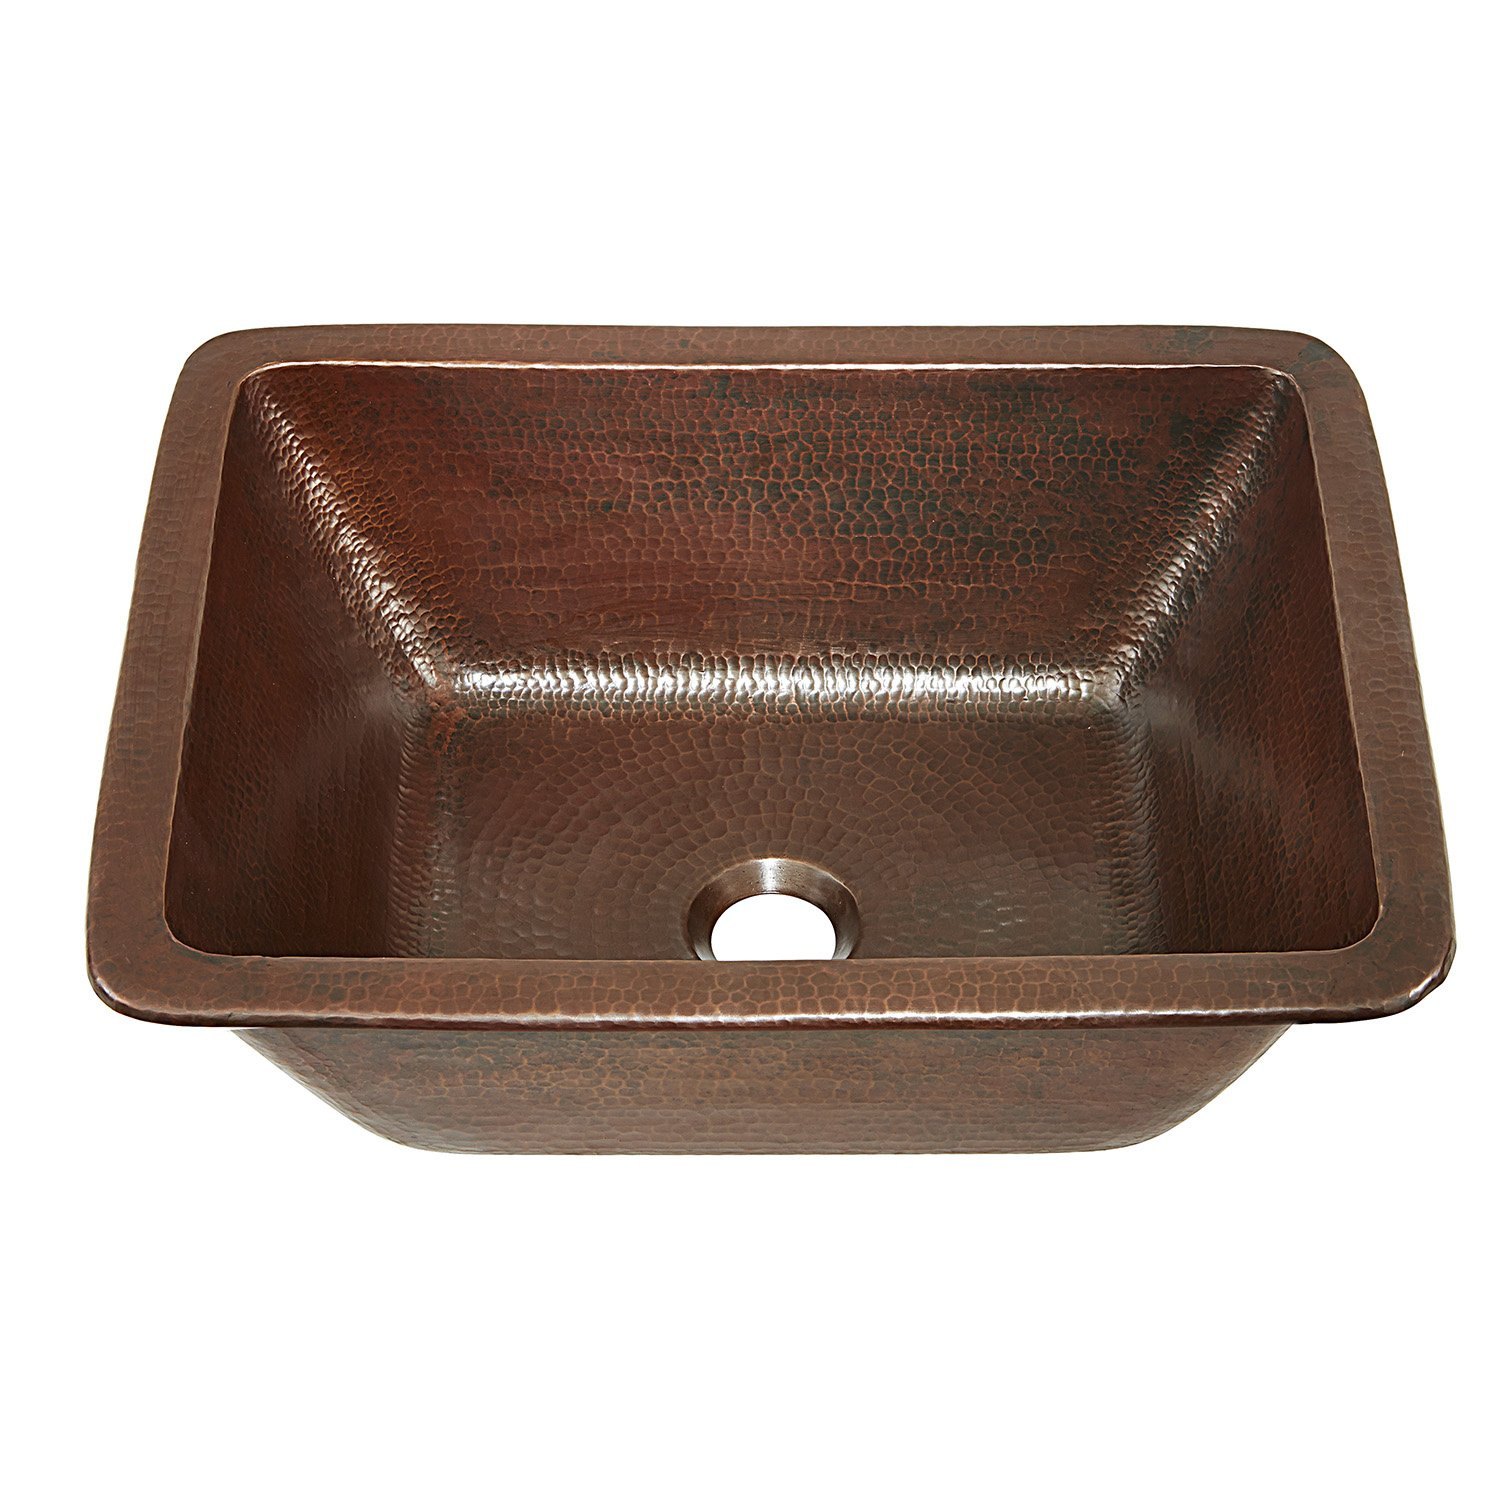 Sinkology SB205-17AG Hawking Pure Solid Dual Mount Bath Sink Handmade, 17'', Aged Copper by Sinkology